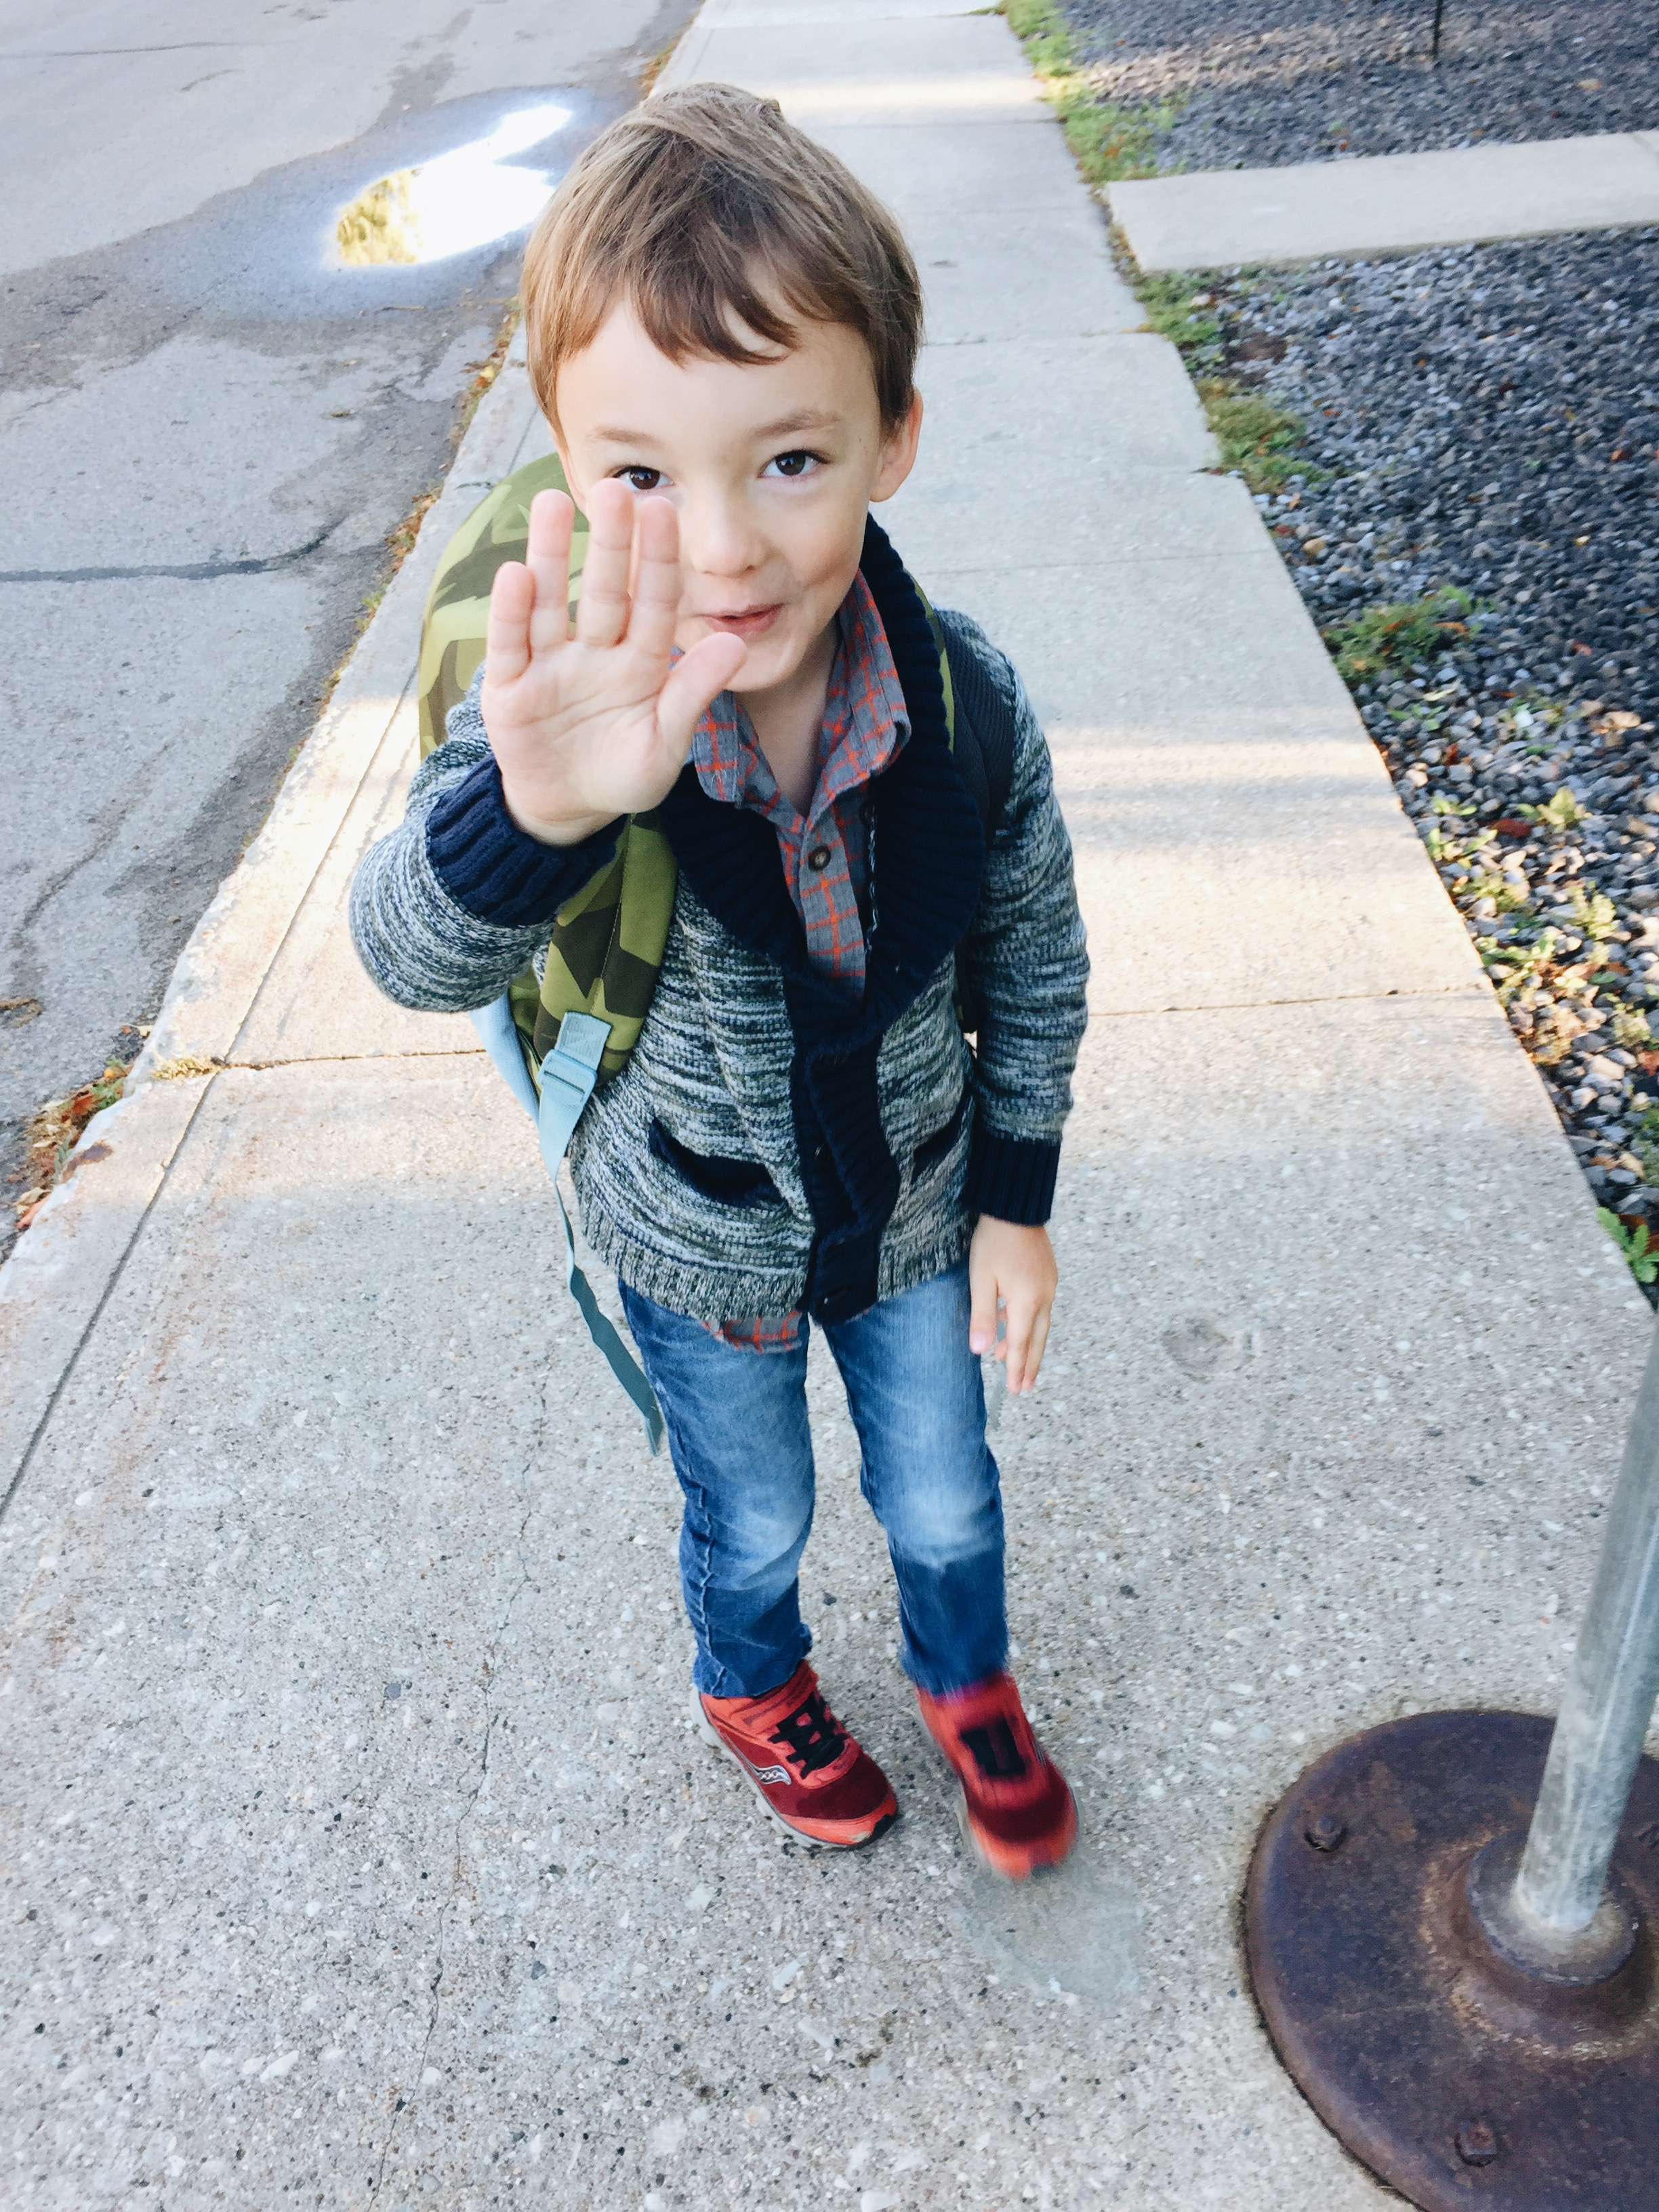 """My son saying """"No pics mom!"""" as I try and take an Instagram-worthy shot of him getting on the bus for the first time."""